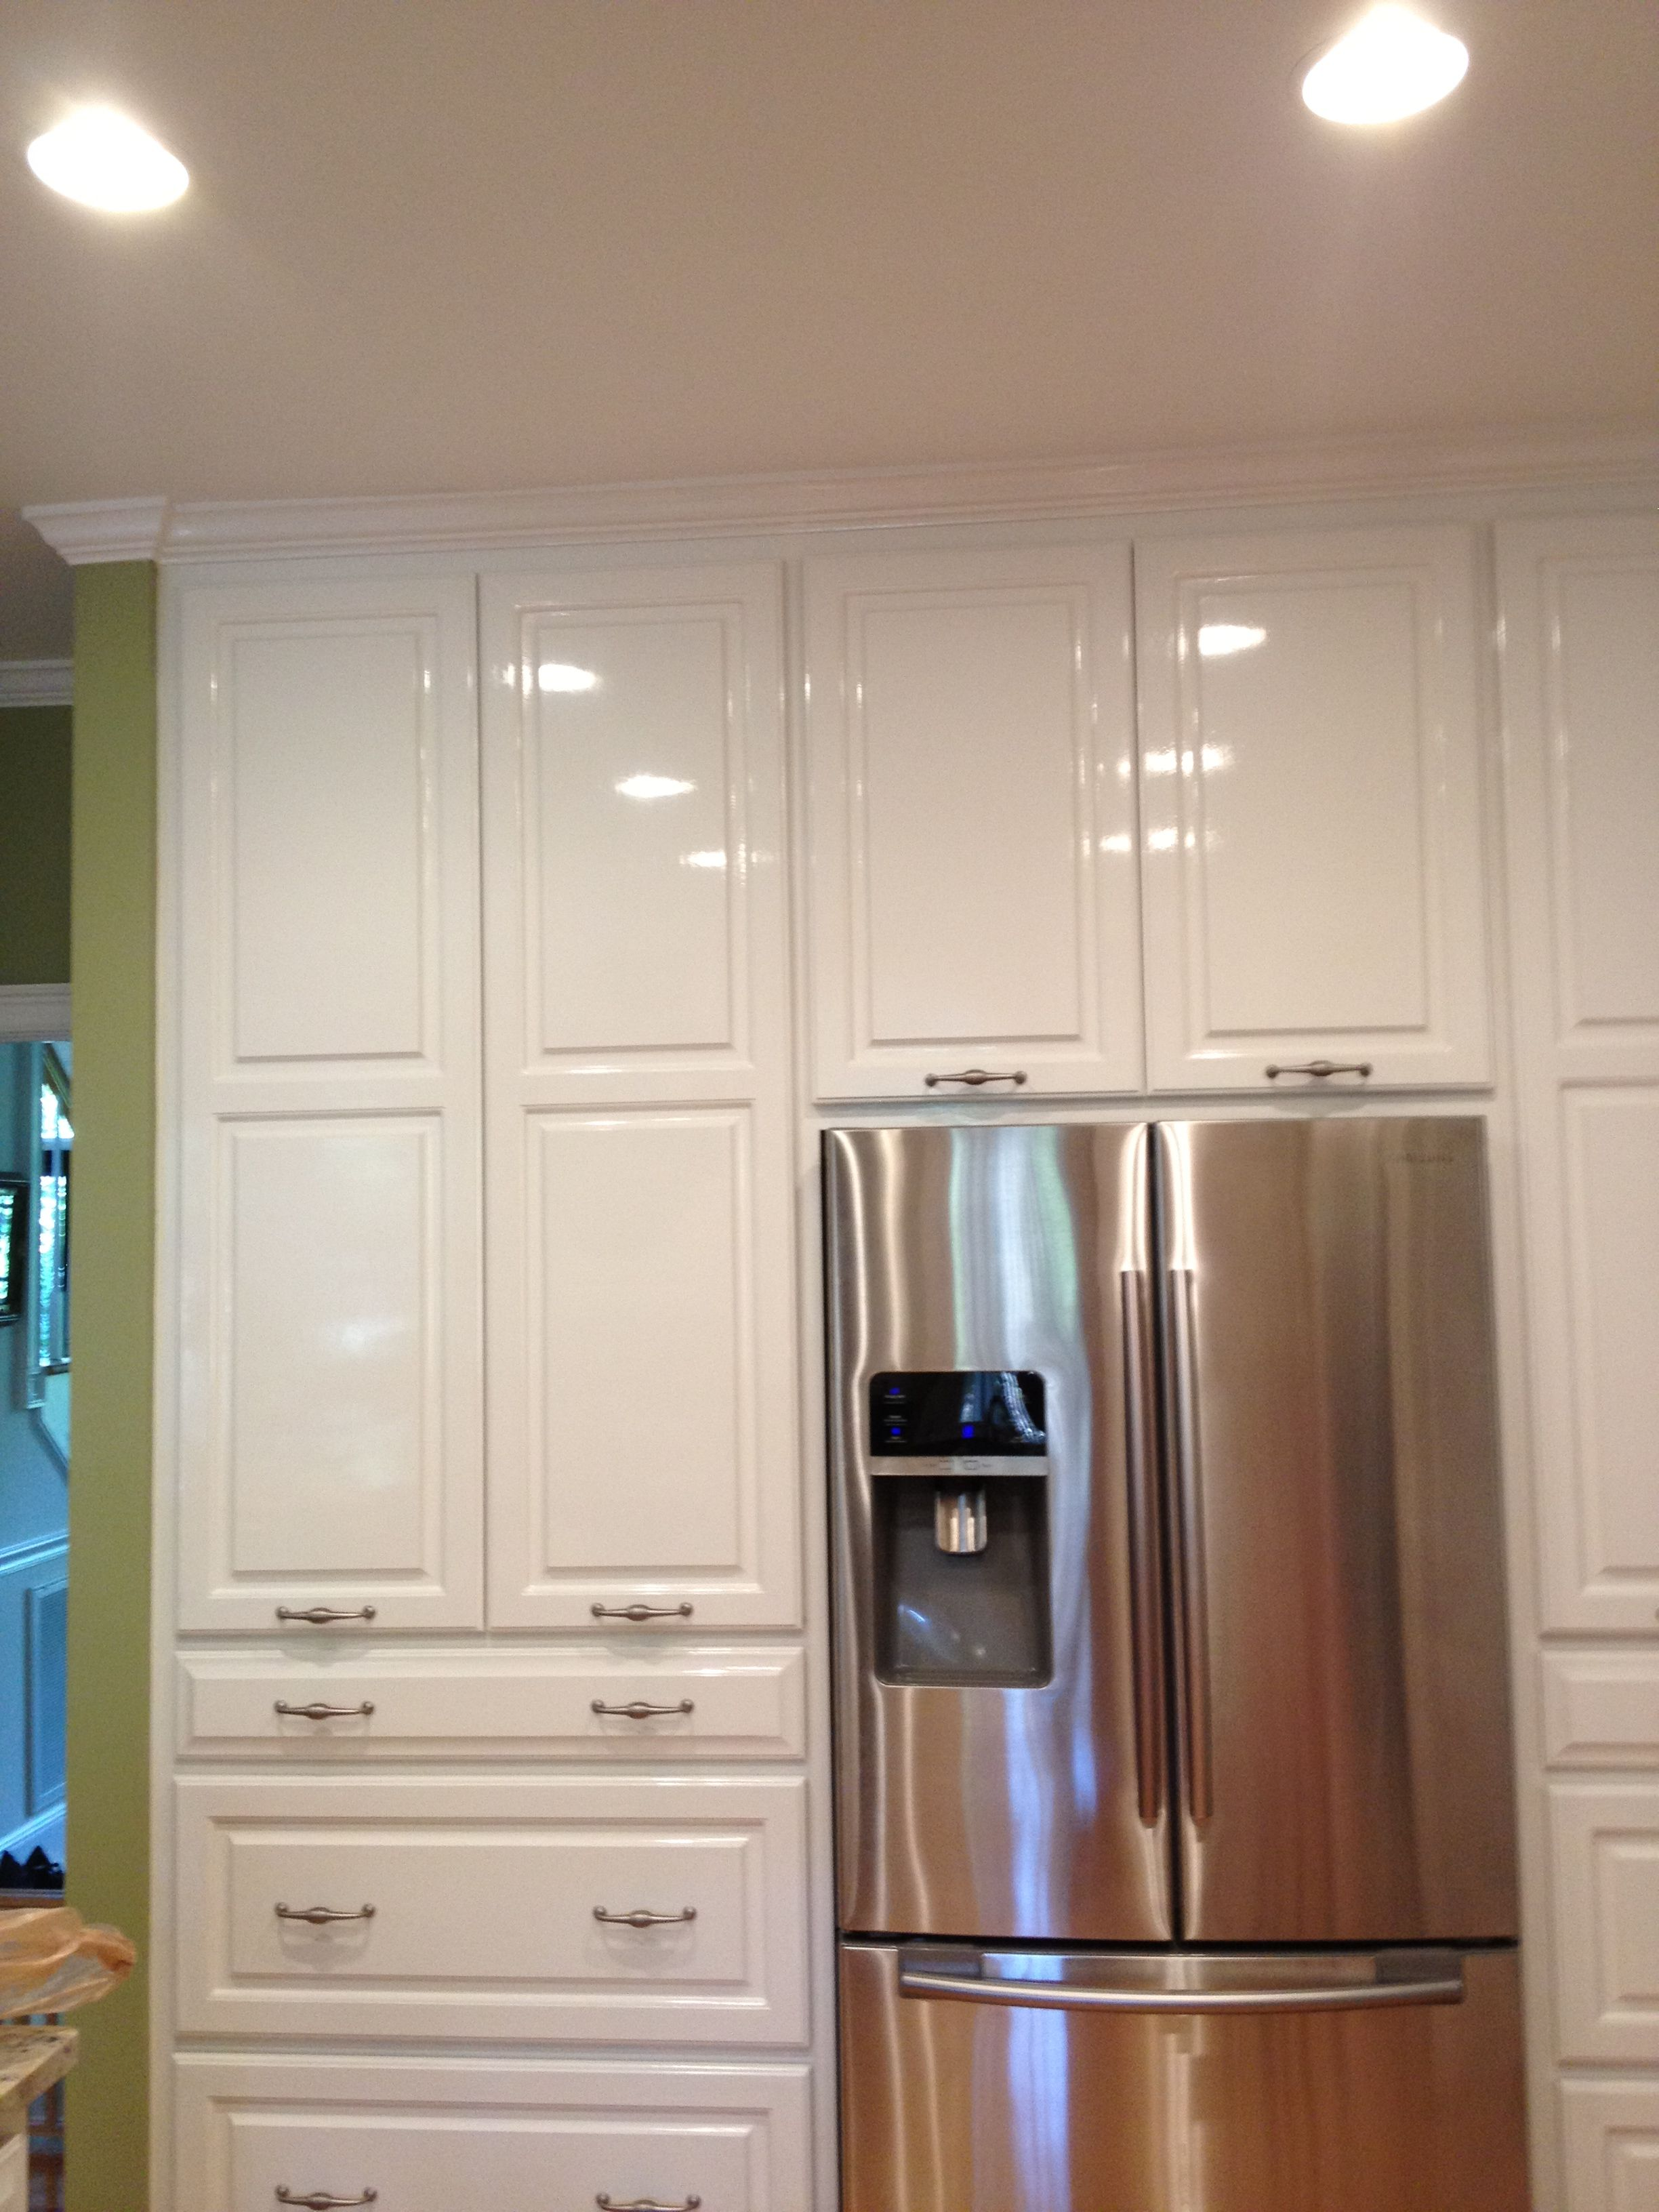 and large cabinet first doors rate for glass of display cabinets size full home trophy depot cases kitchen inserts door